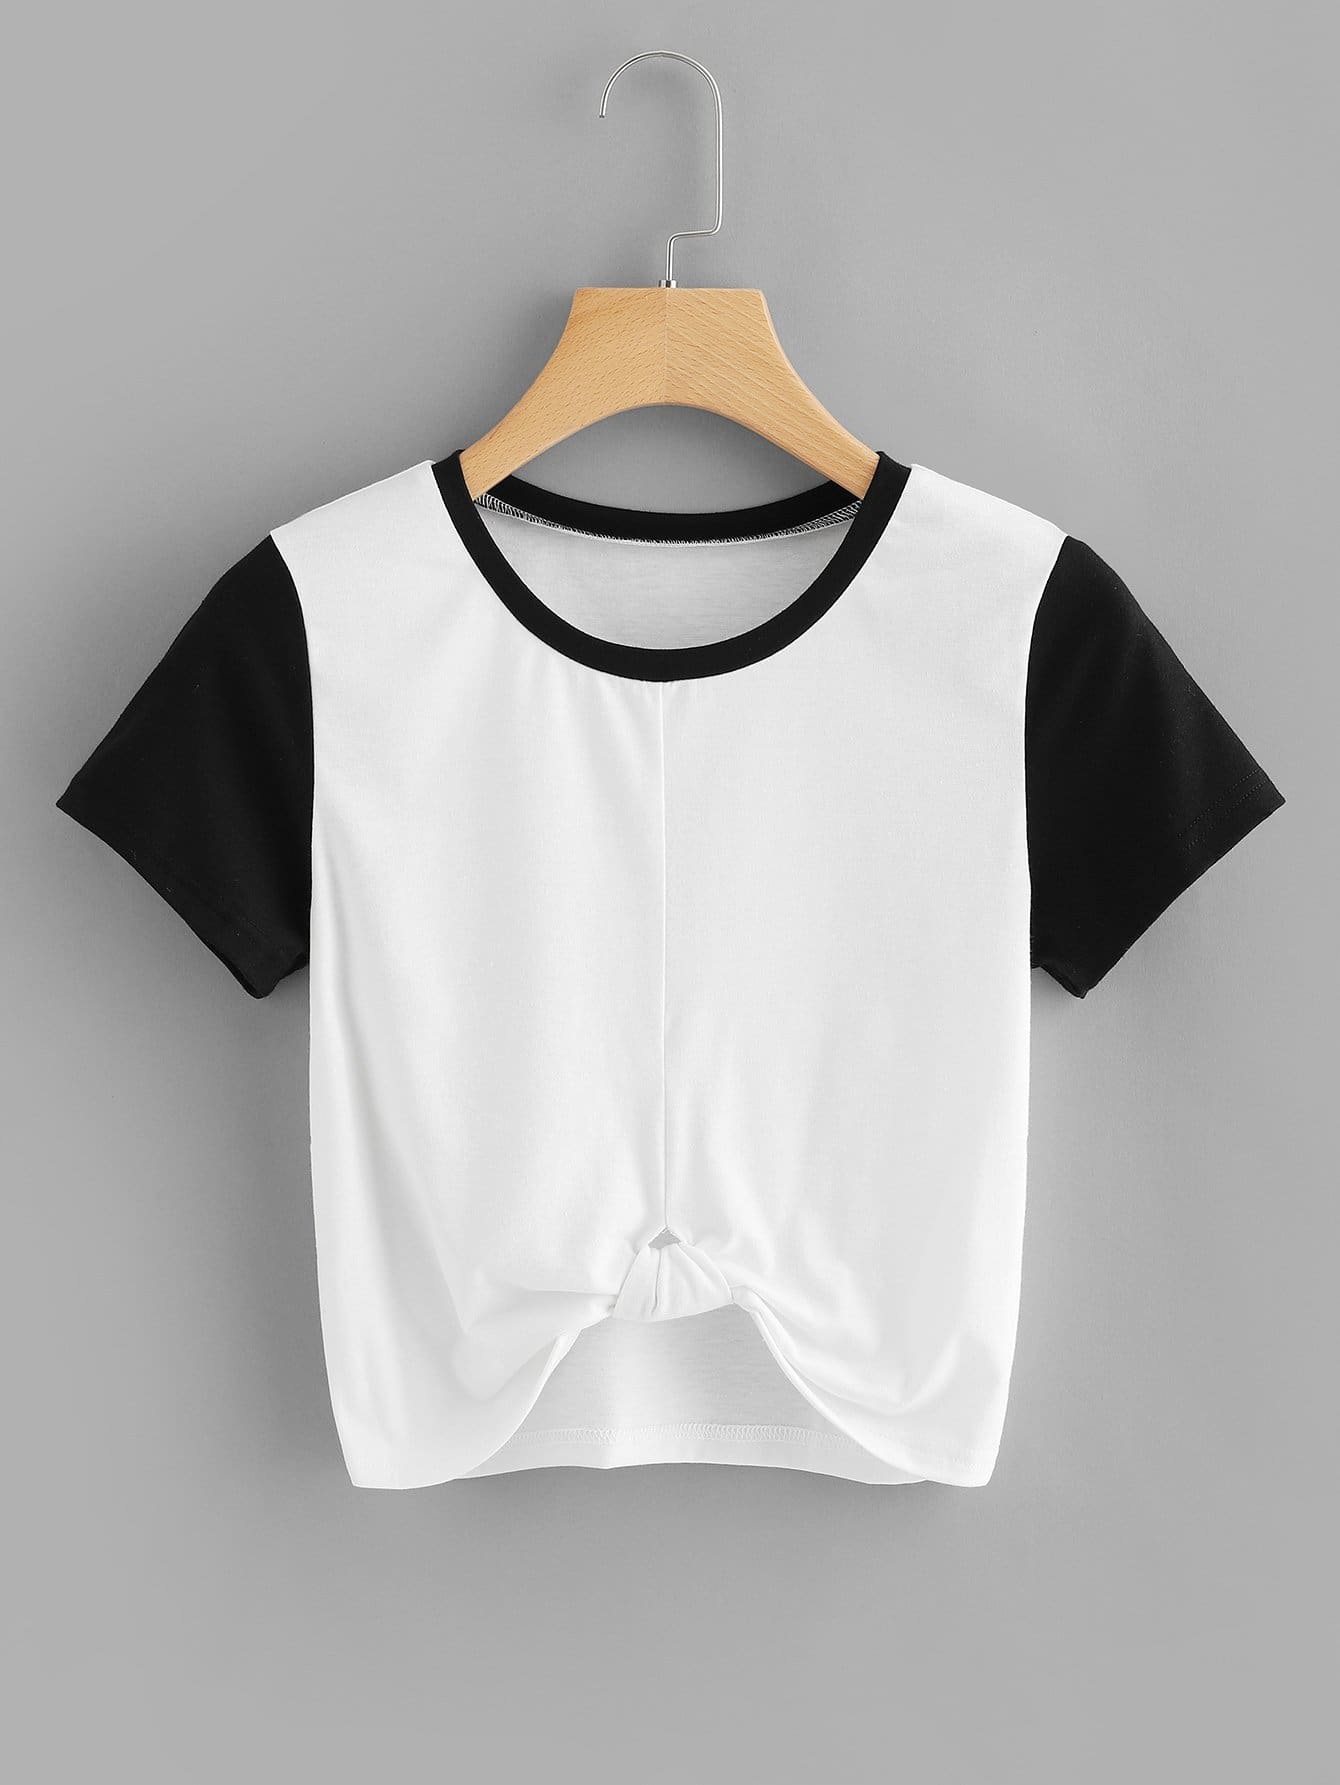 Knot Front Crop Tee hollow lace shoulder knot front tee